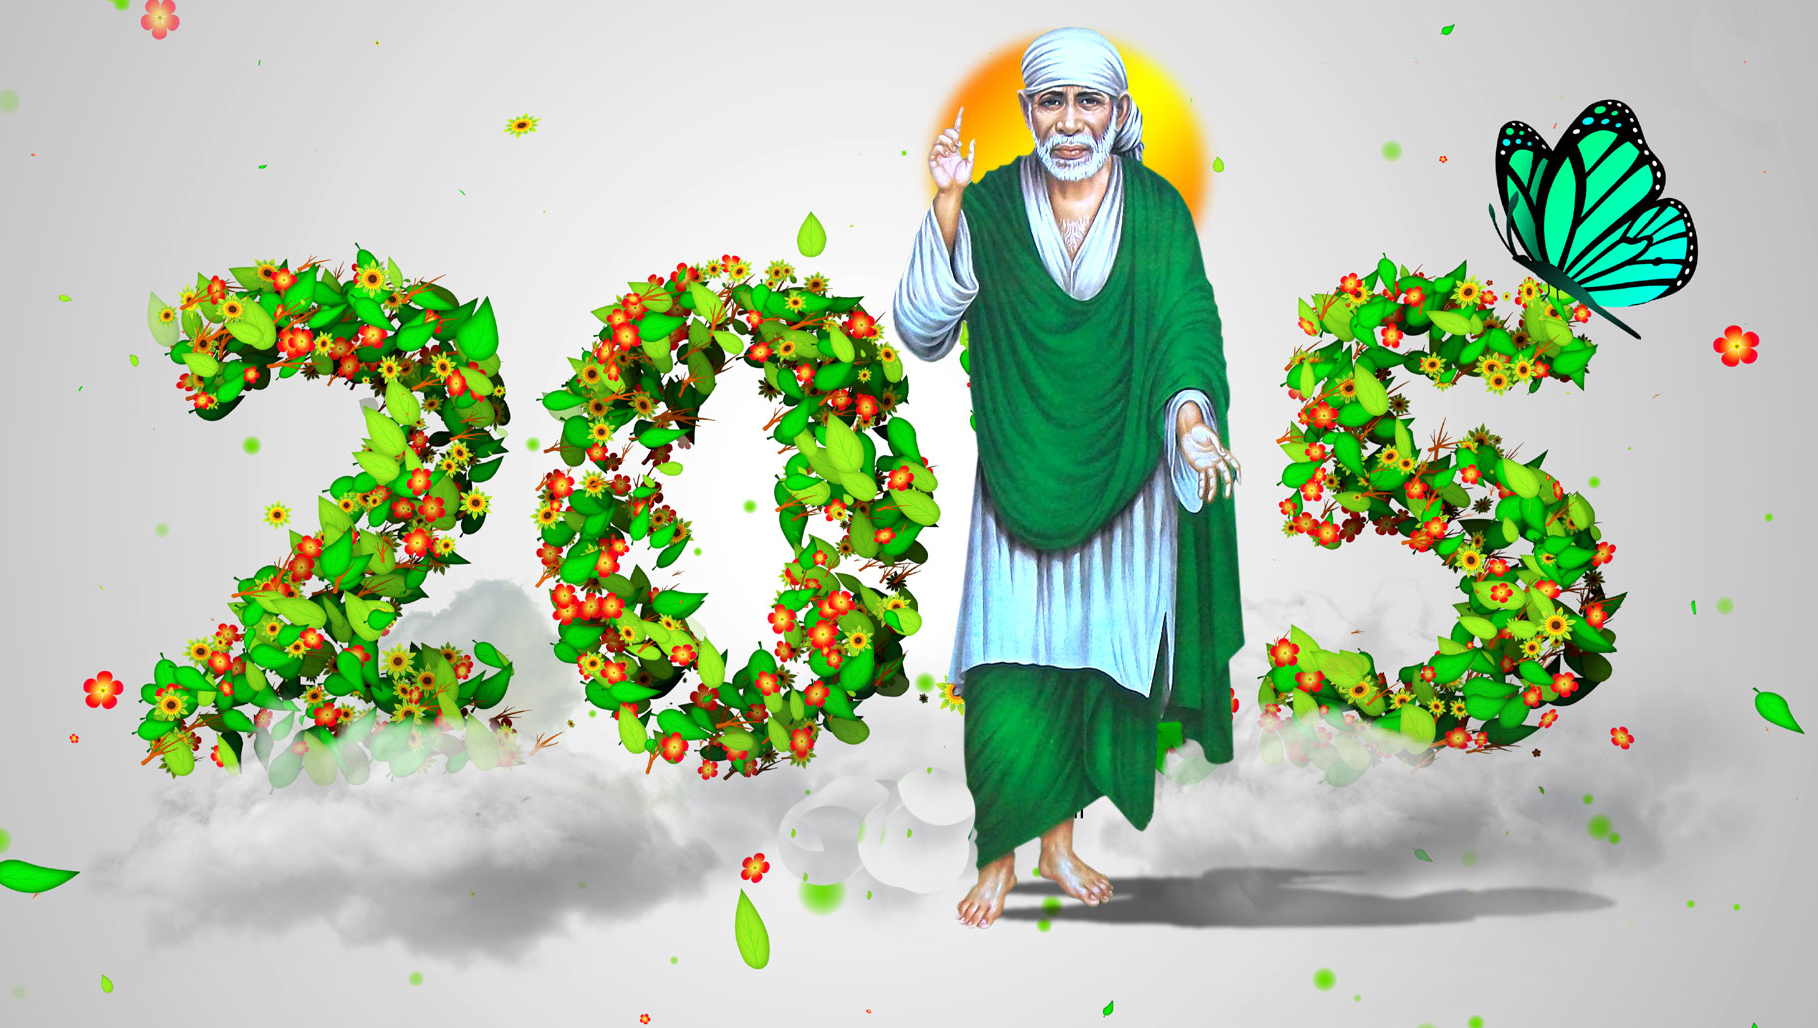 Wallpaper download new year 2015 - Happy New Year 2015 Sai Baba Hd Wallpapers